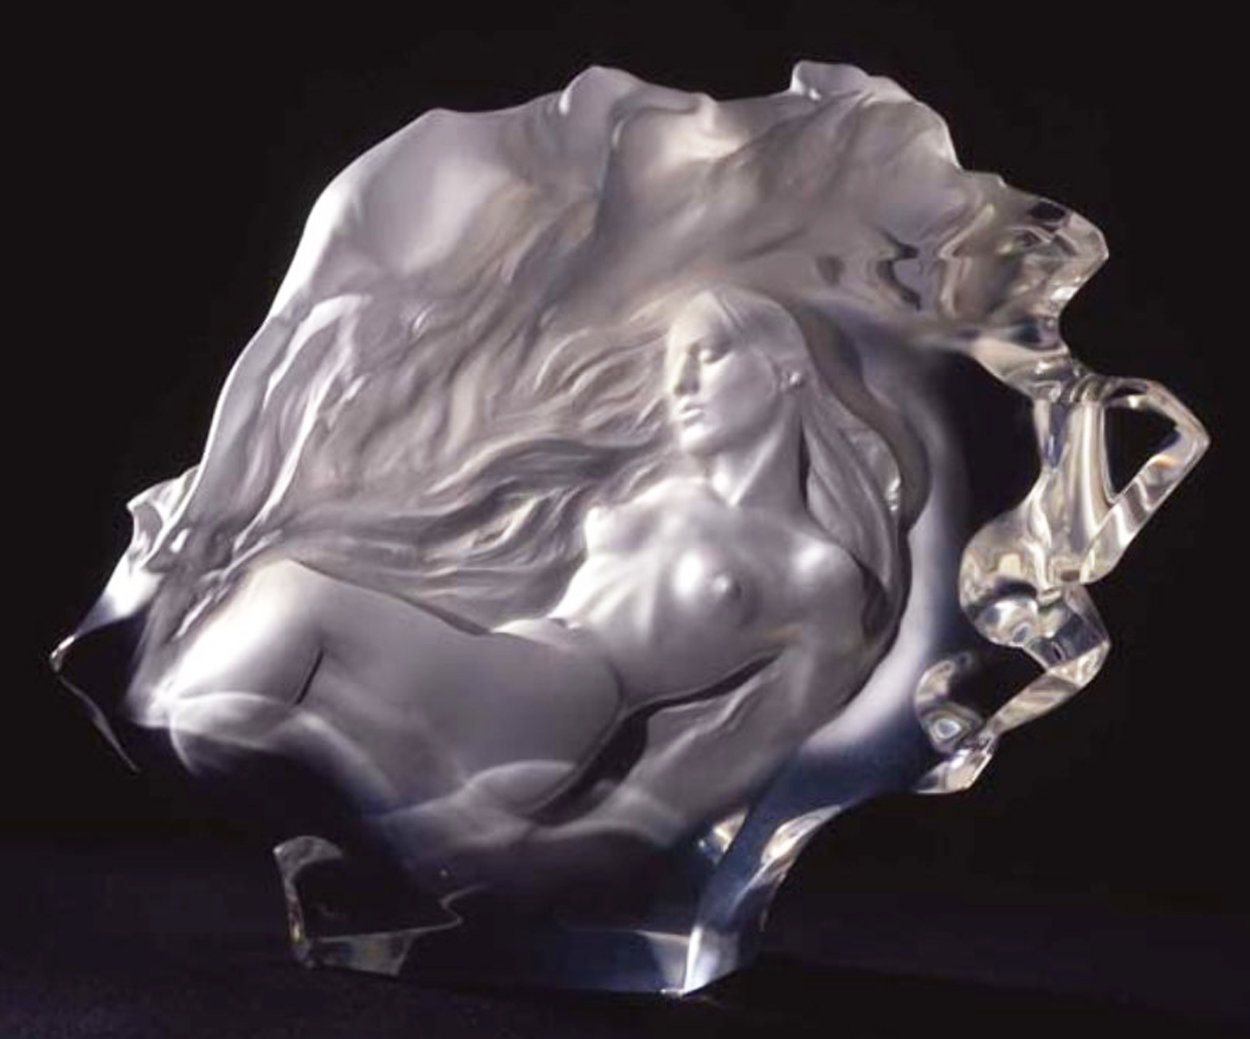 Dreamers Acrylic Sculpture 1993 26 in Sculpture by Frederick Hart